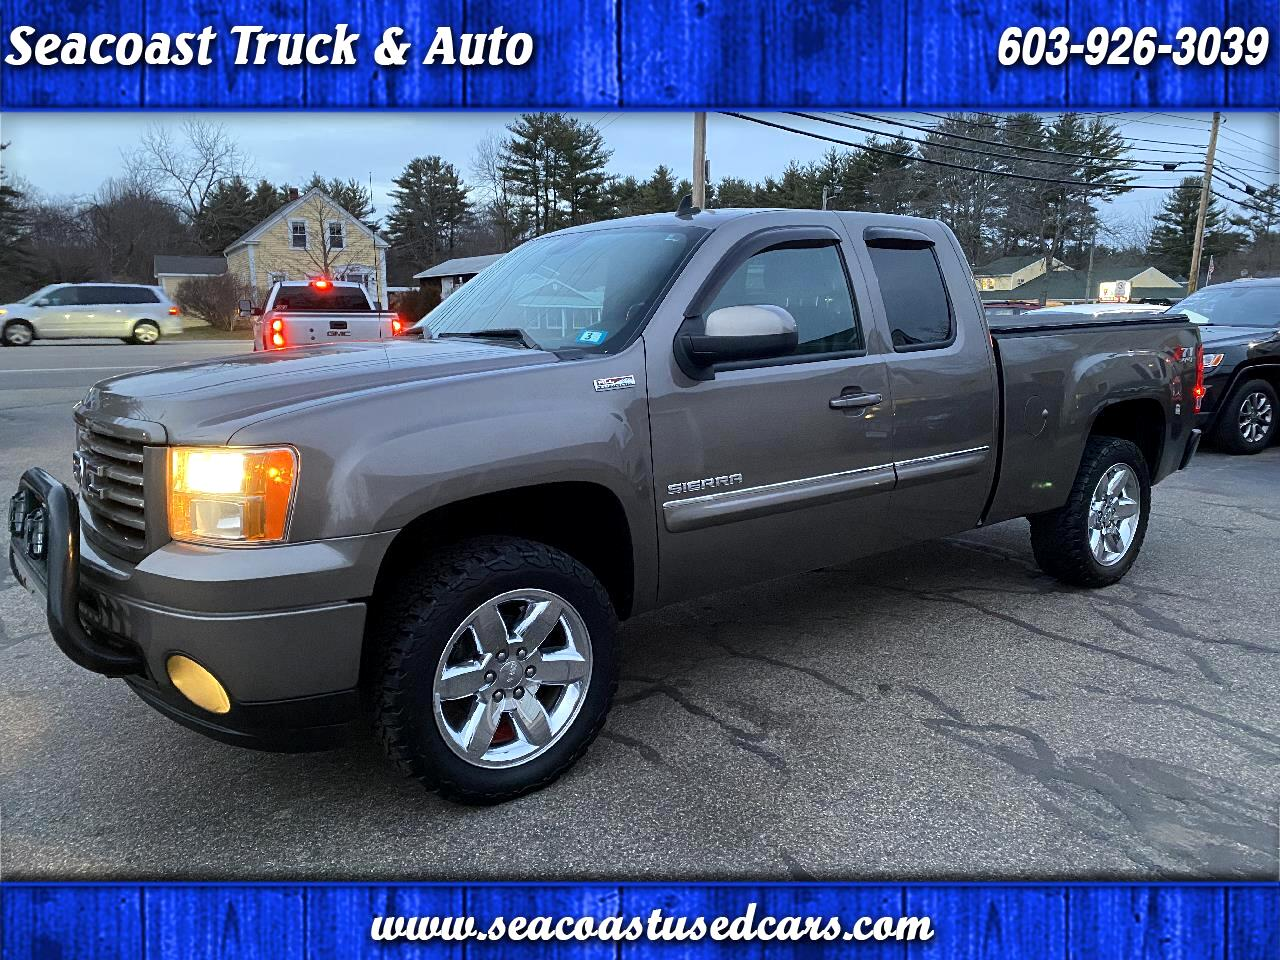 Used Cars For Sale Hampton Falls Nh 03844 Seacoast Truck Auto